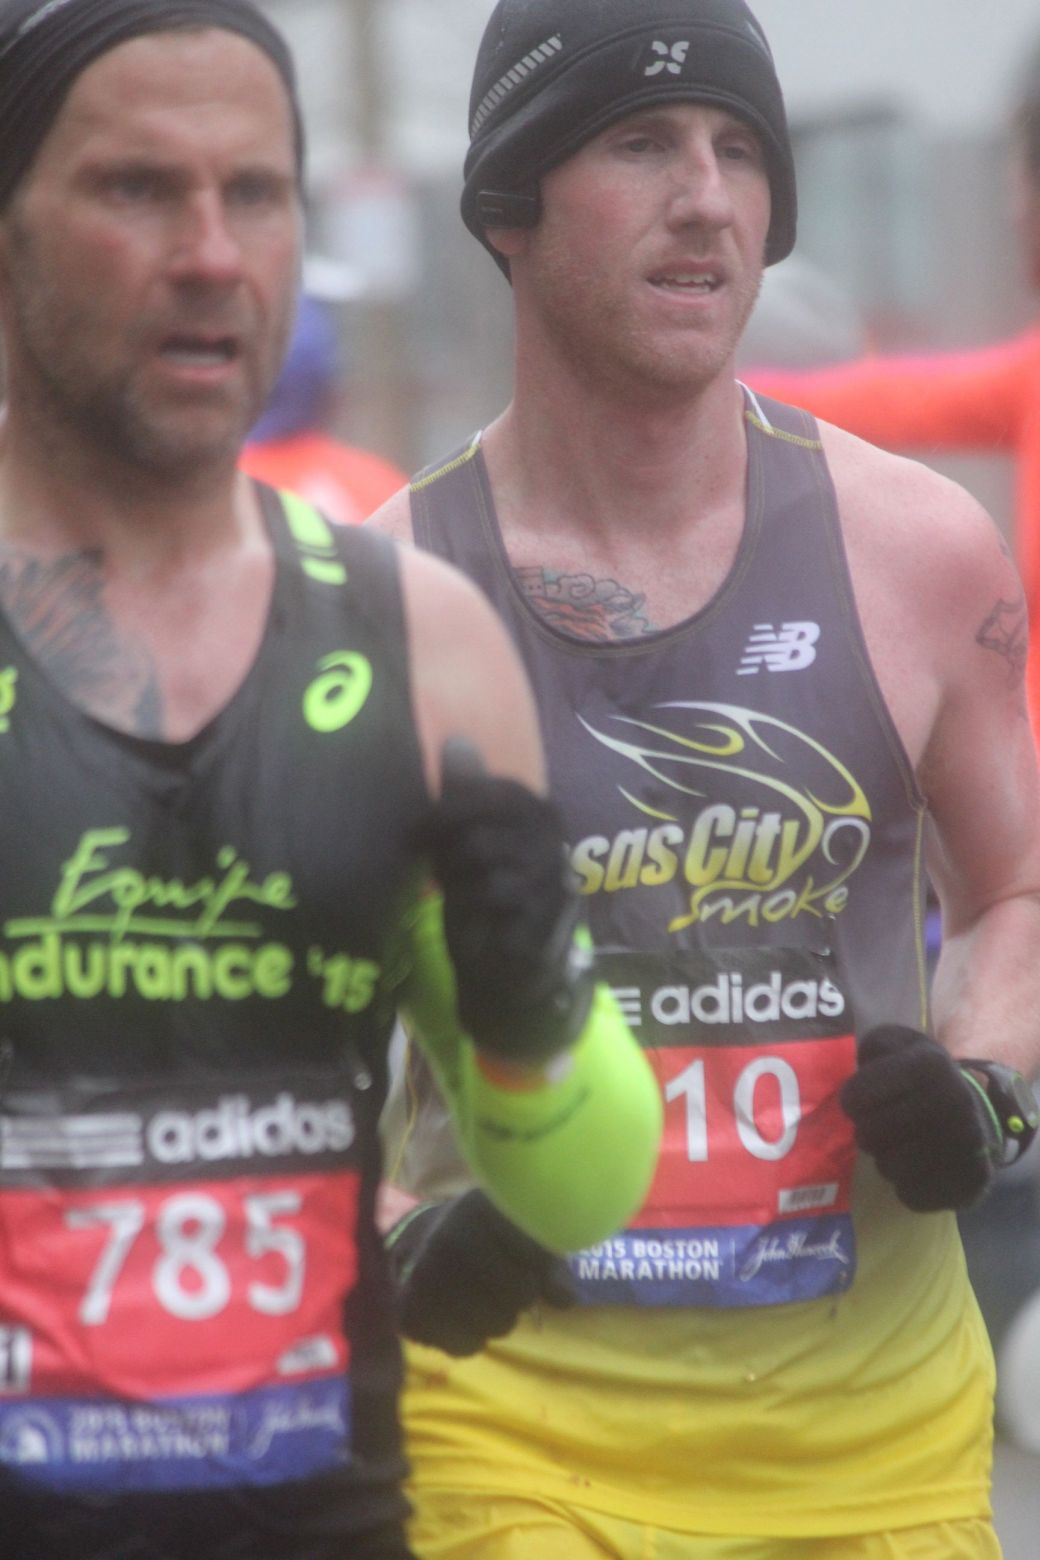 boston marathon april 20 2015 racer number 785